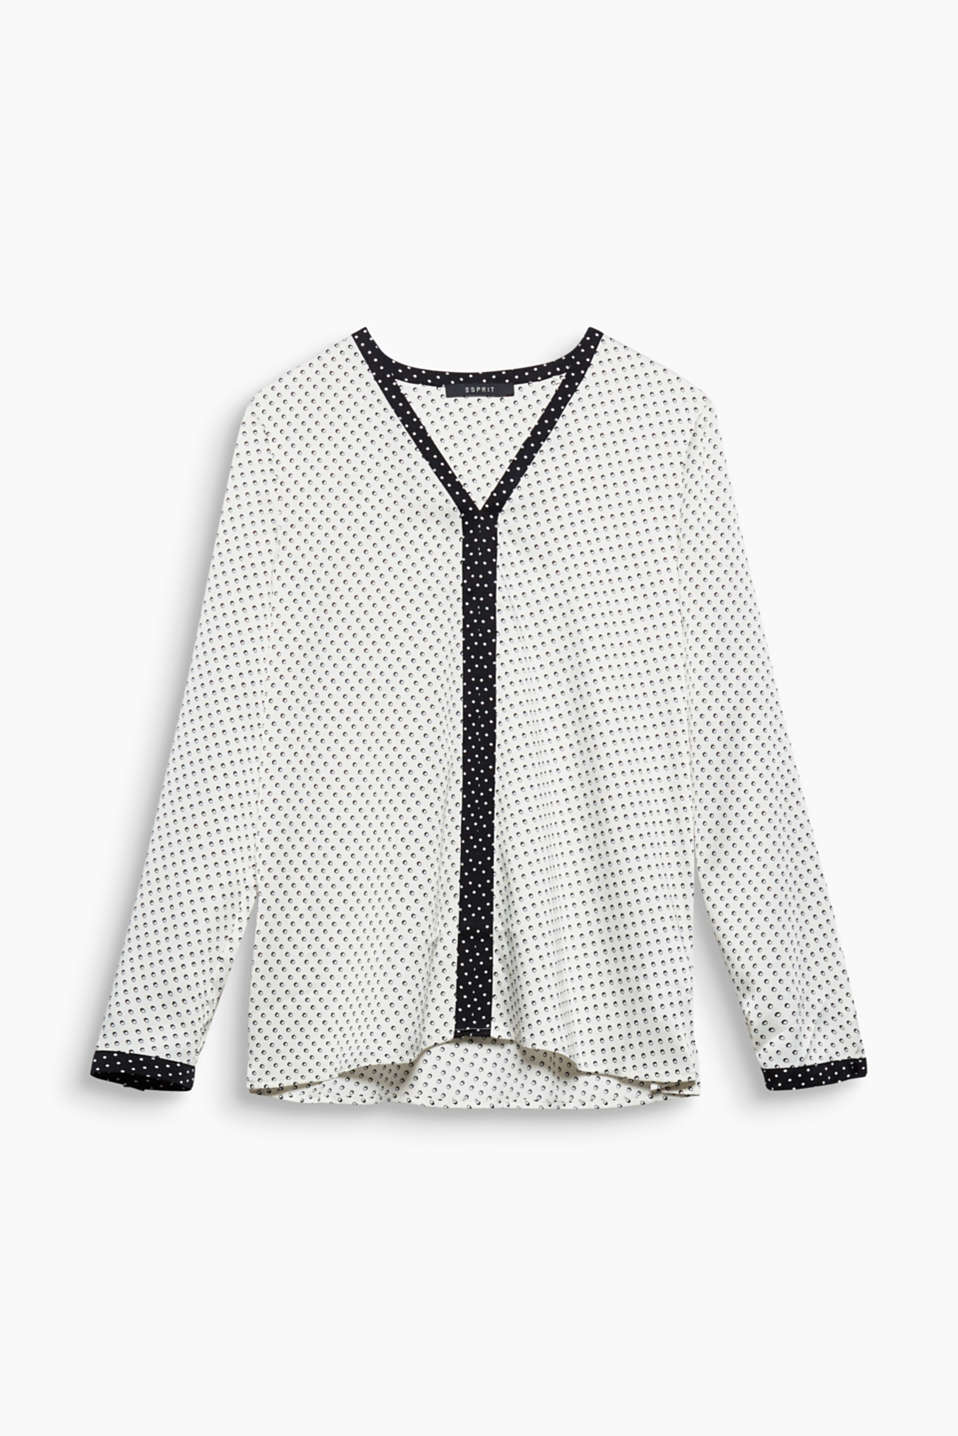 Details in a contrasting colour make this charming polka dot satin blouse in an elegant tunic style a highlight piece.